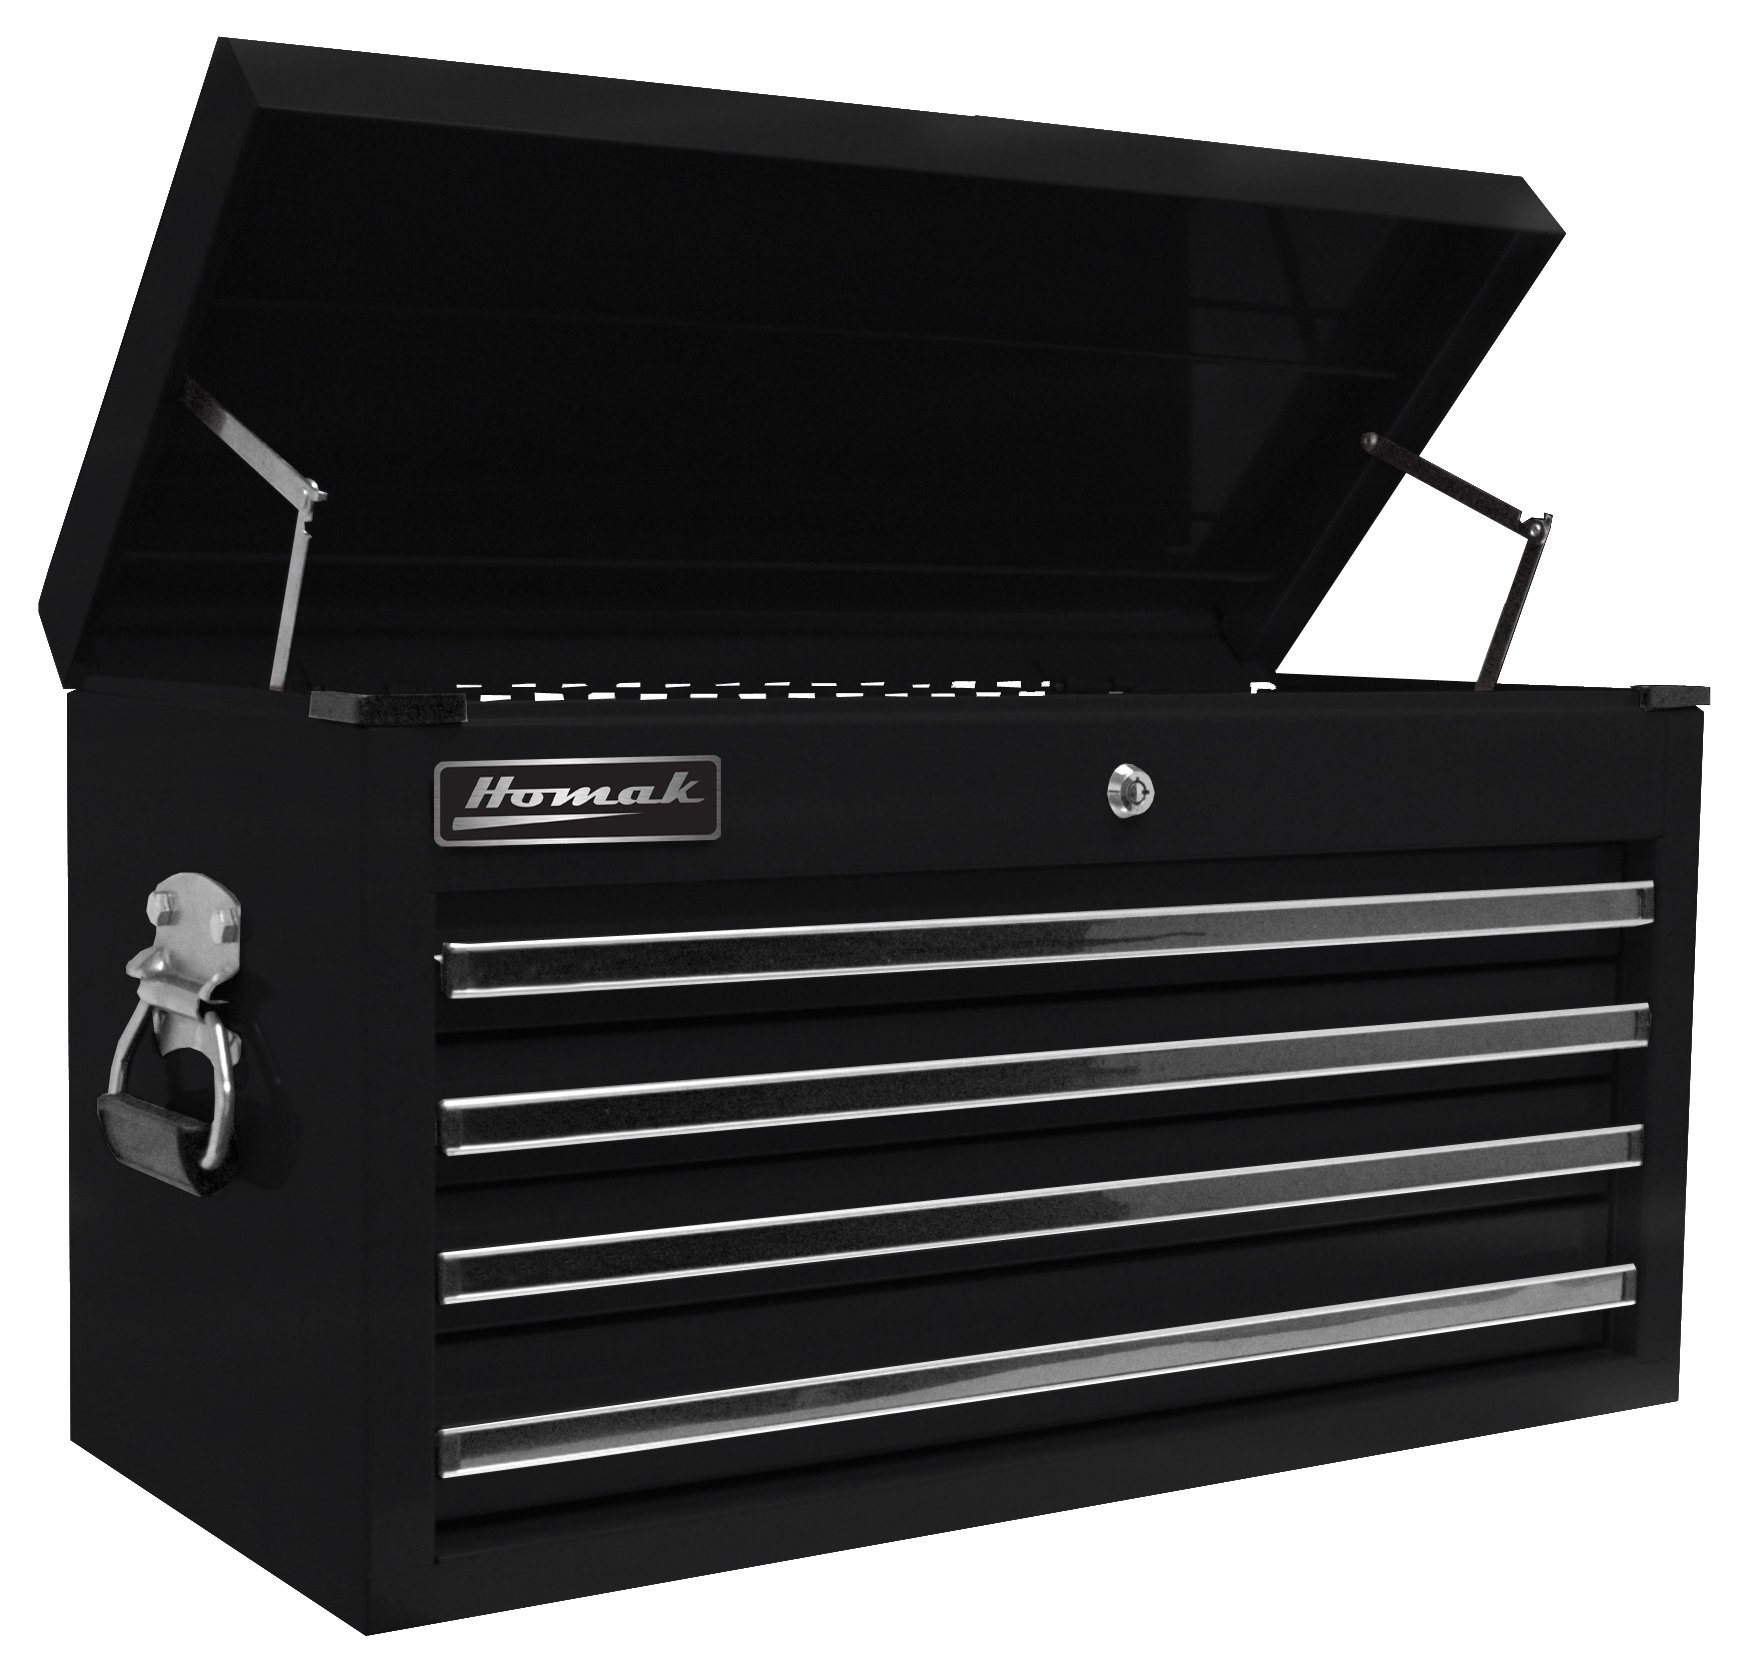 Homak   BK02042601 27-Inch Professional 4 Drawer Top Chest, Black by Homak Mfg. Co., Inc. (Image #1)